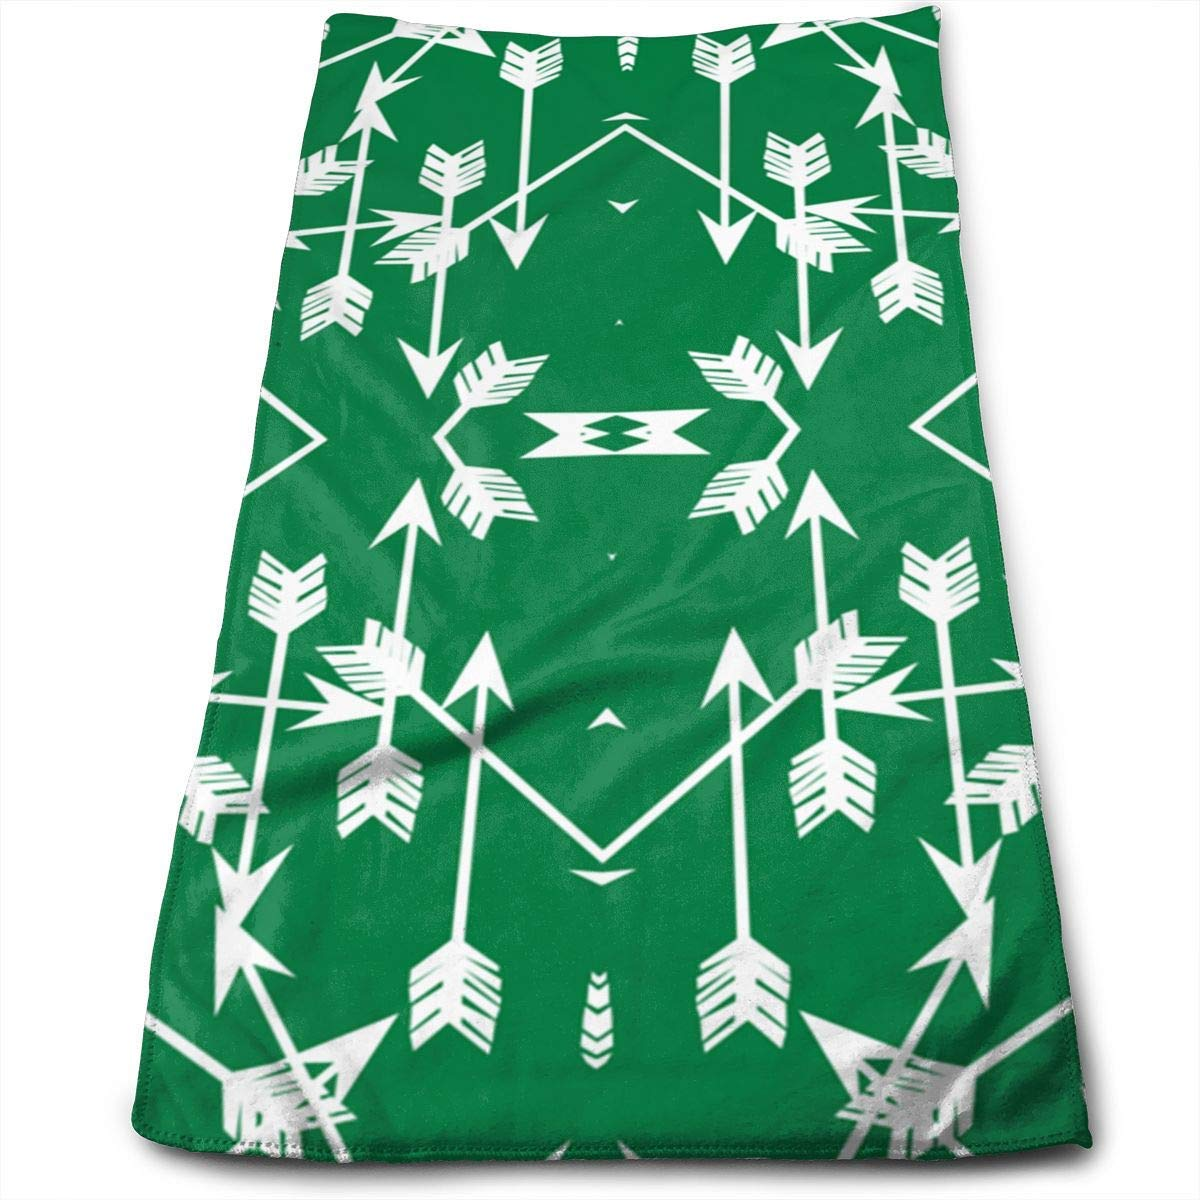 OQUYCZ Arrow Green Microfiber Bath Towels,Soft, Super Absorbent and Fast Drying, Antibacterial, Use for Sports, Travel, Fitness, Yoga